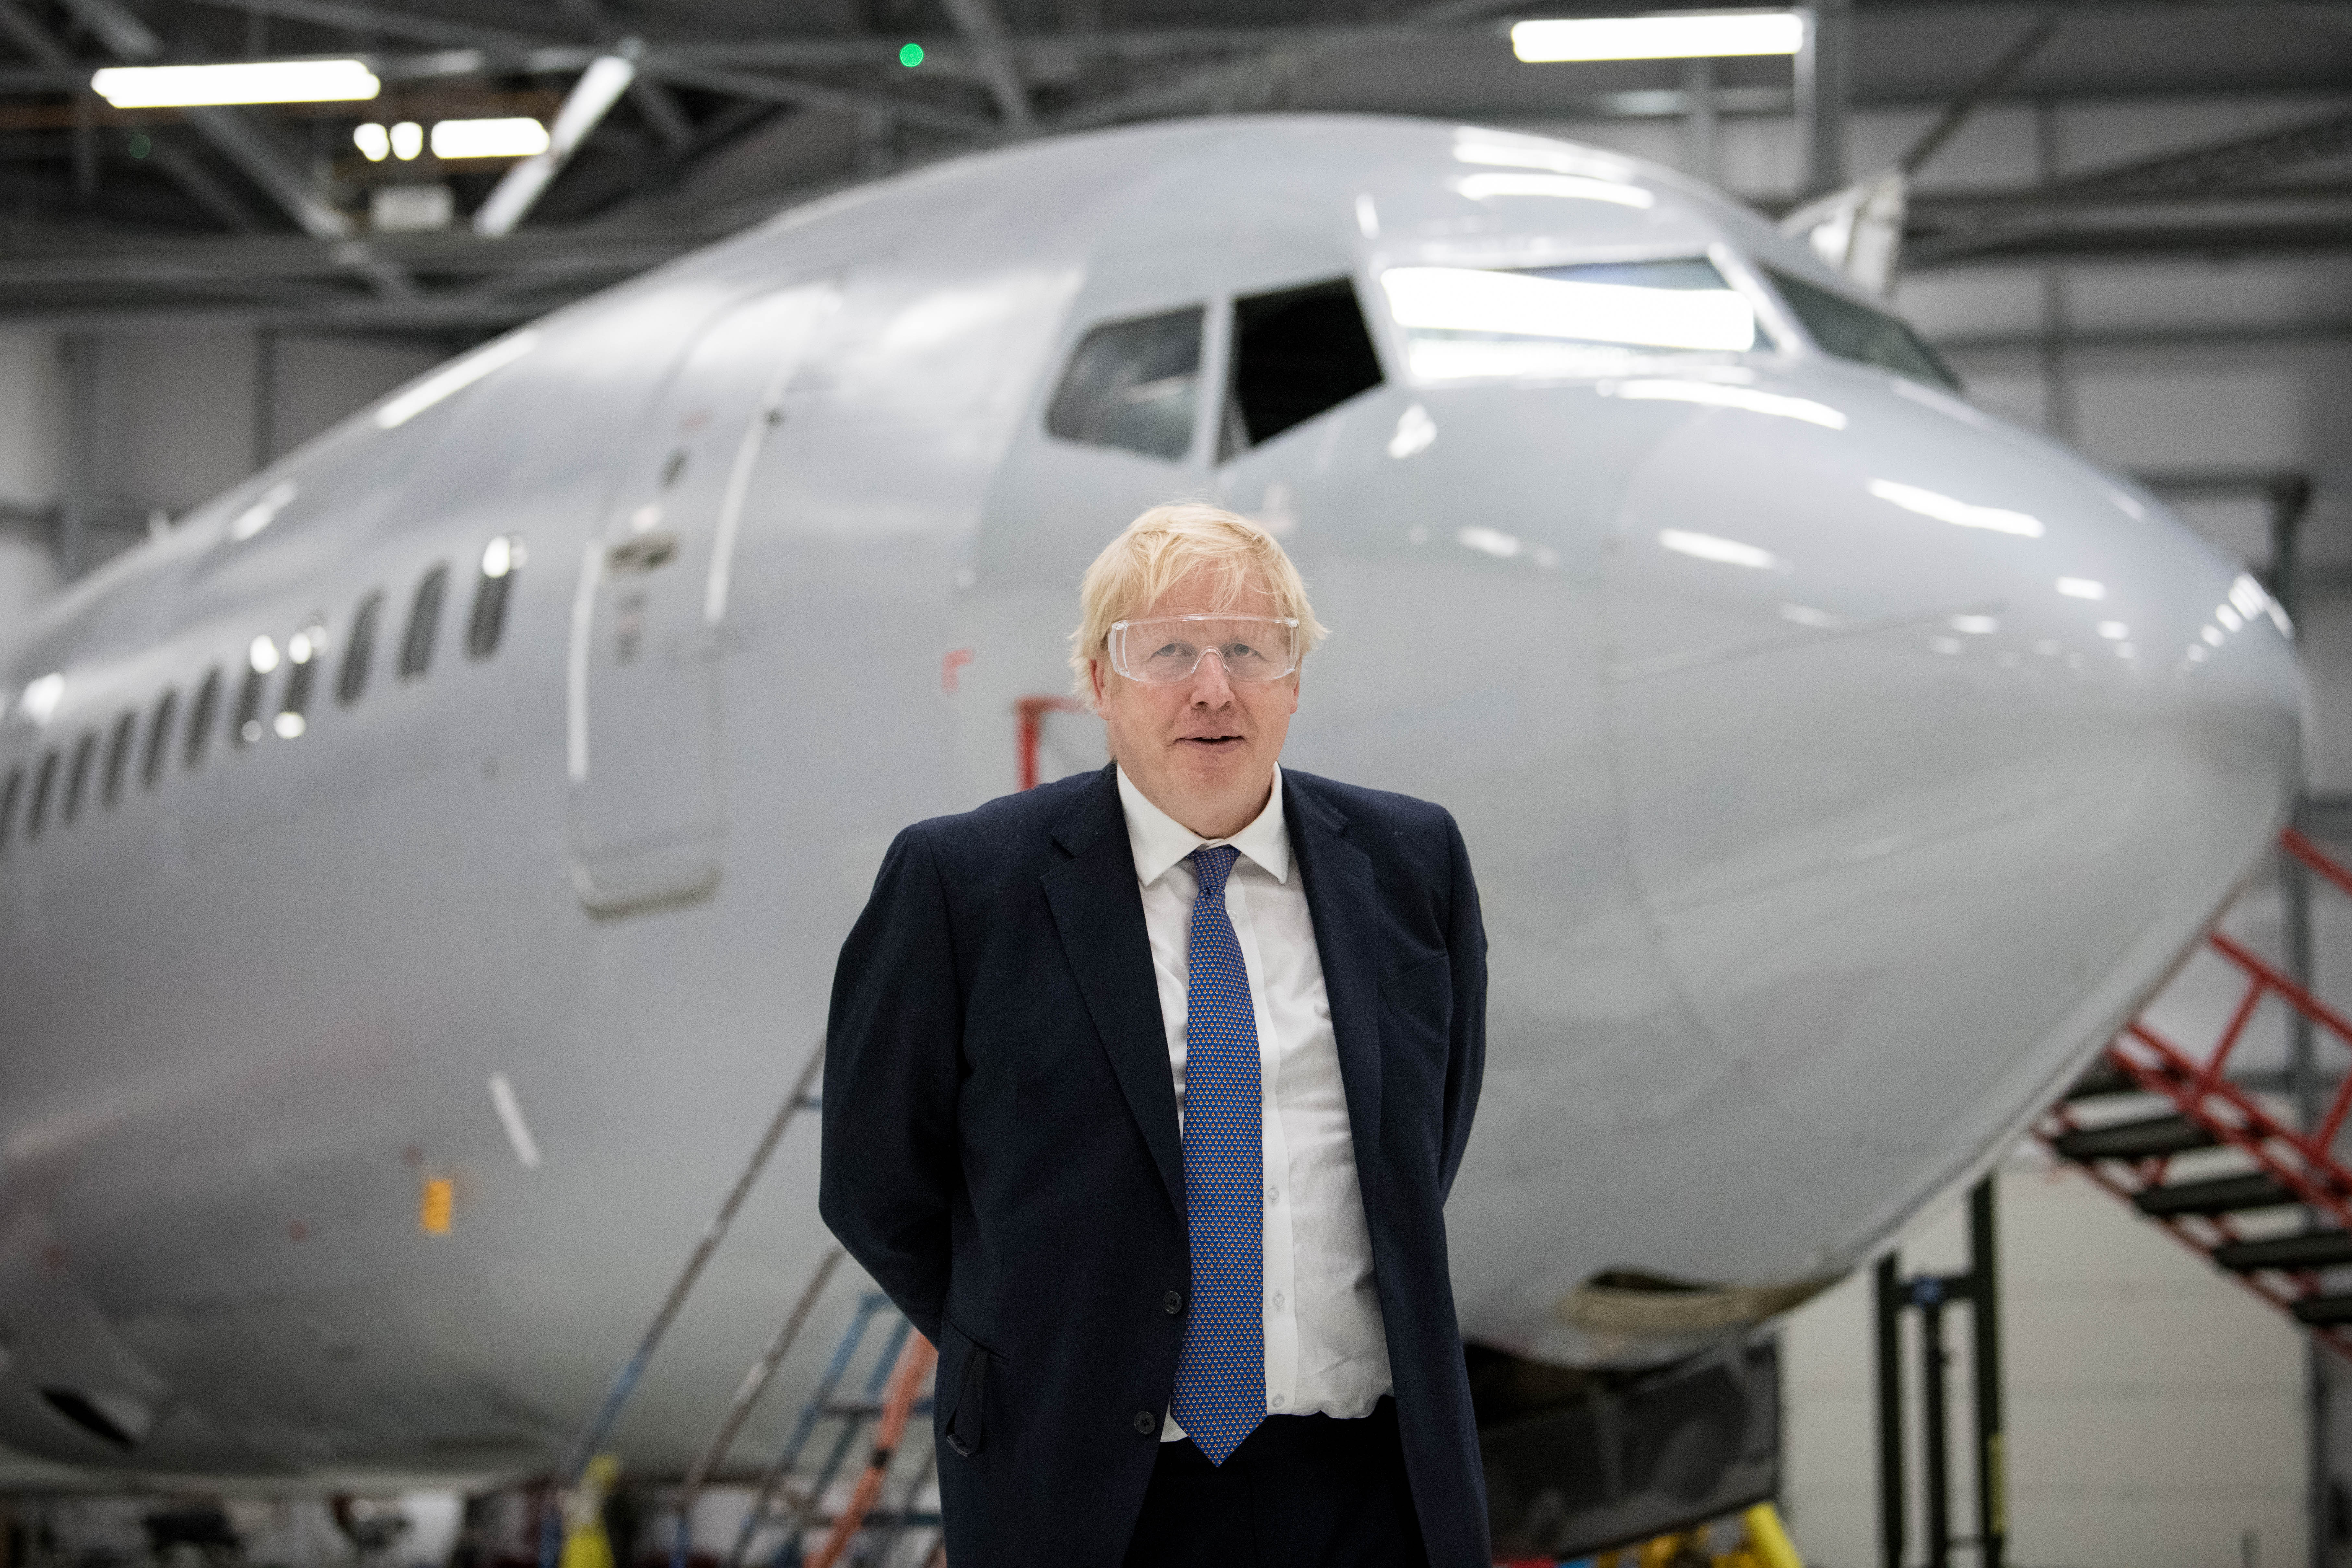 Prime Minister Boris Johnson in a hangar on a visit to the International Aviation Academy, Norwich, whilst on the General Election campaign trail.